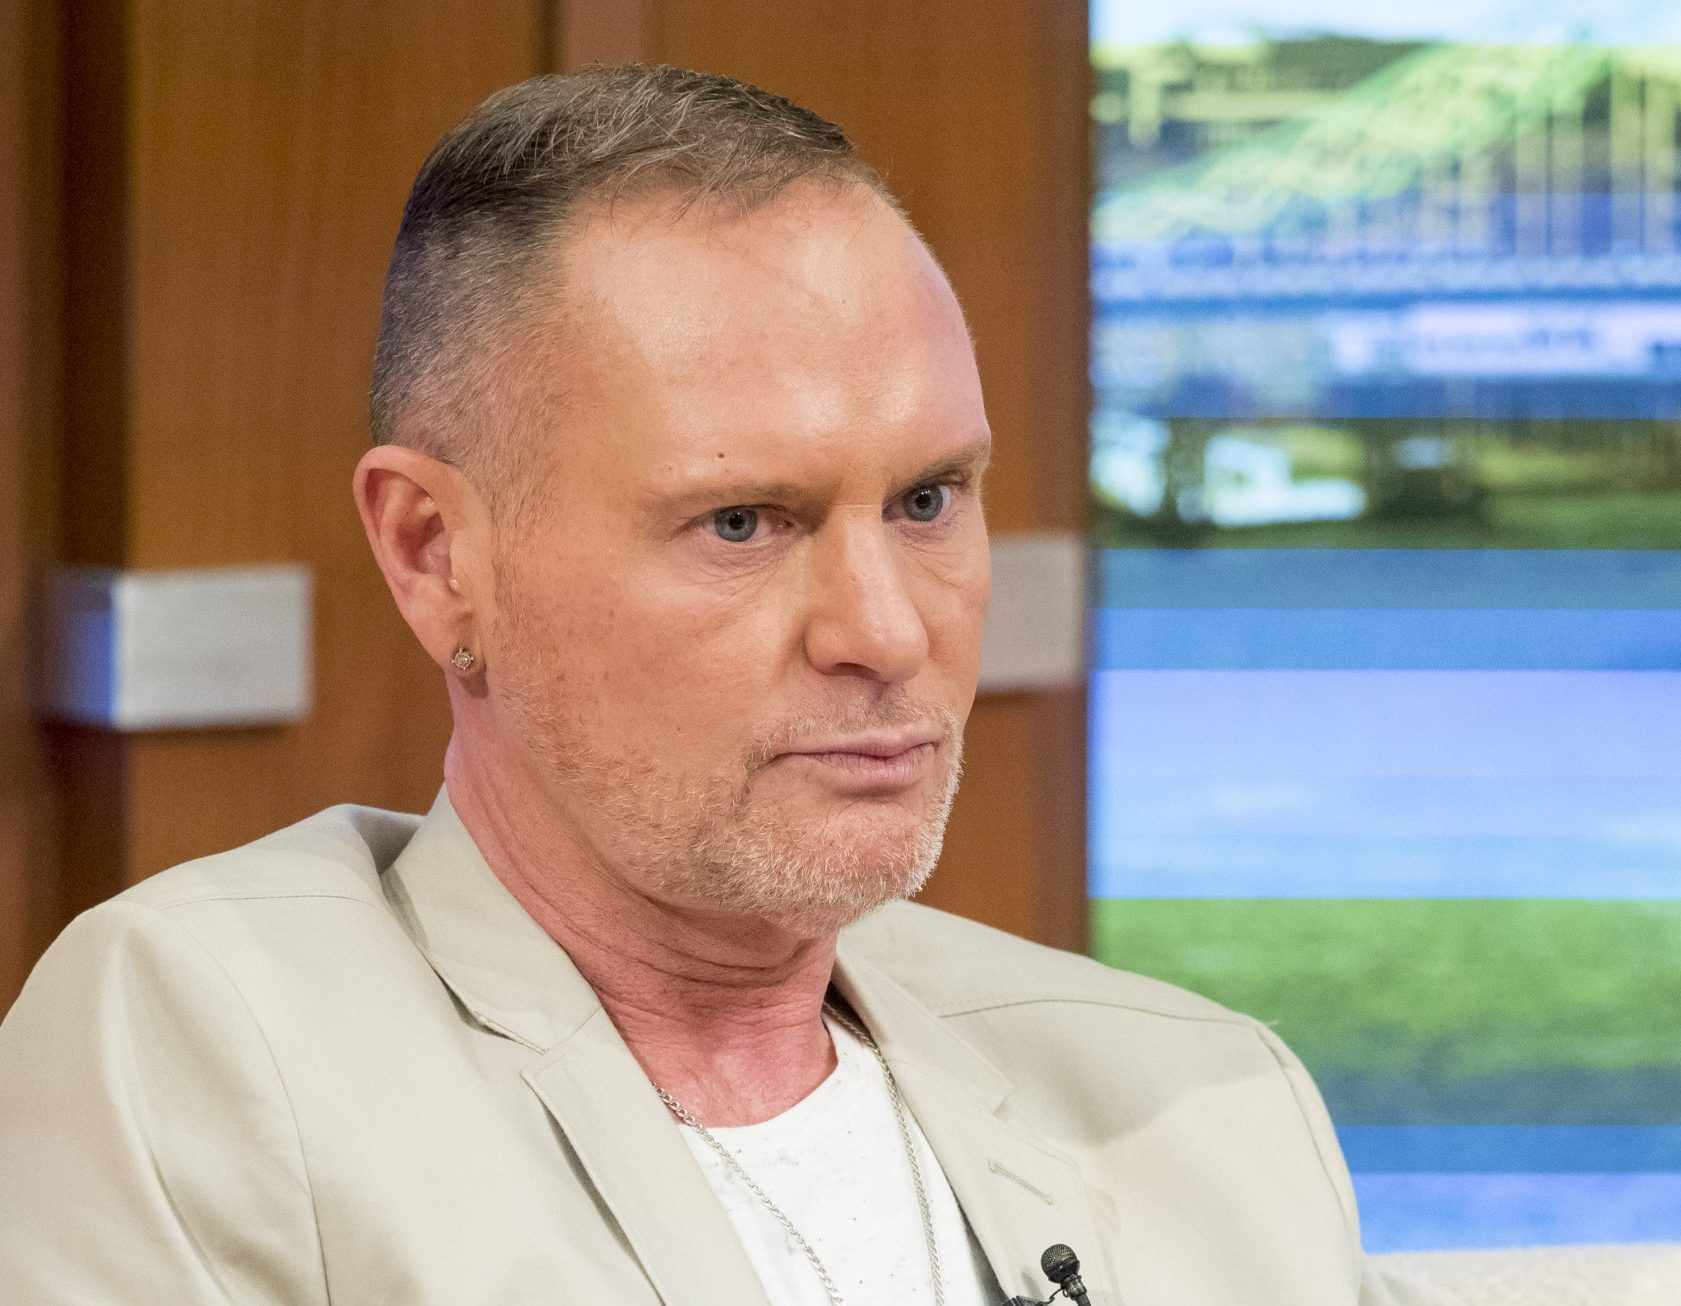 """Editorial use only Mandatory Credit: Photo by Ken McKay/ITV/REX/Shutterstock (5657855d) Paul Gascoigne 'Good Morning Britain' TV show, London, Britain - 20 Apr 2016 """"Not perfect but trying his best""""...Paul Gascoigne has described his recent alcohol relapse as """"one blip"""" in an 11-month period., Recent photos released by his management company show him looking happy and healthy - we speak to him live on the sofa."""